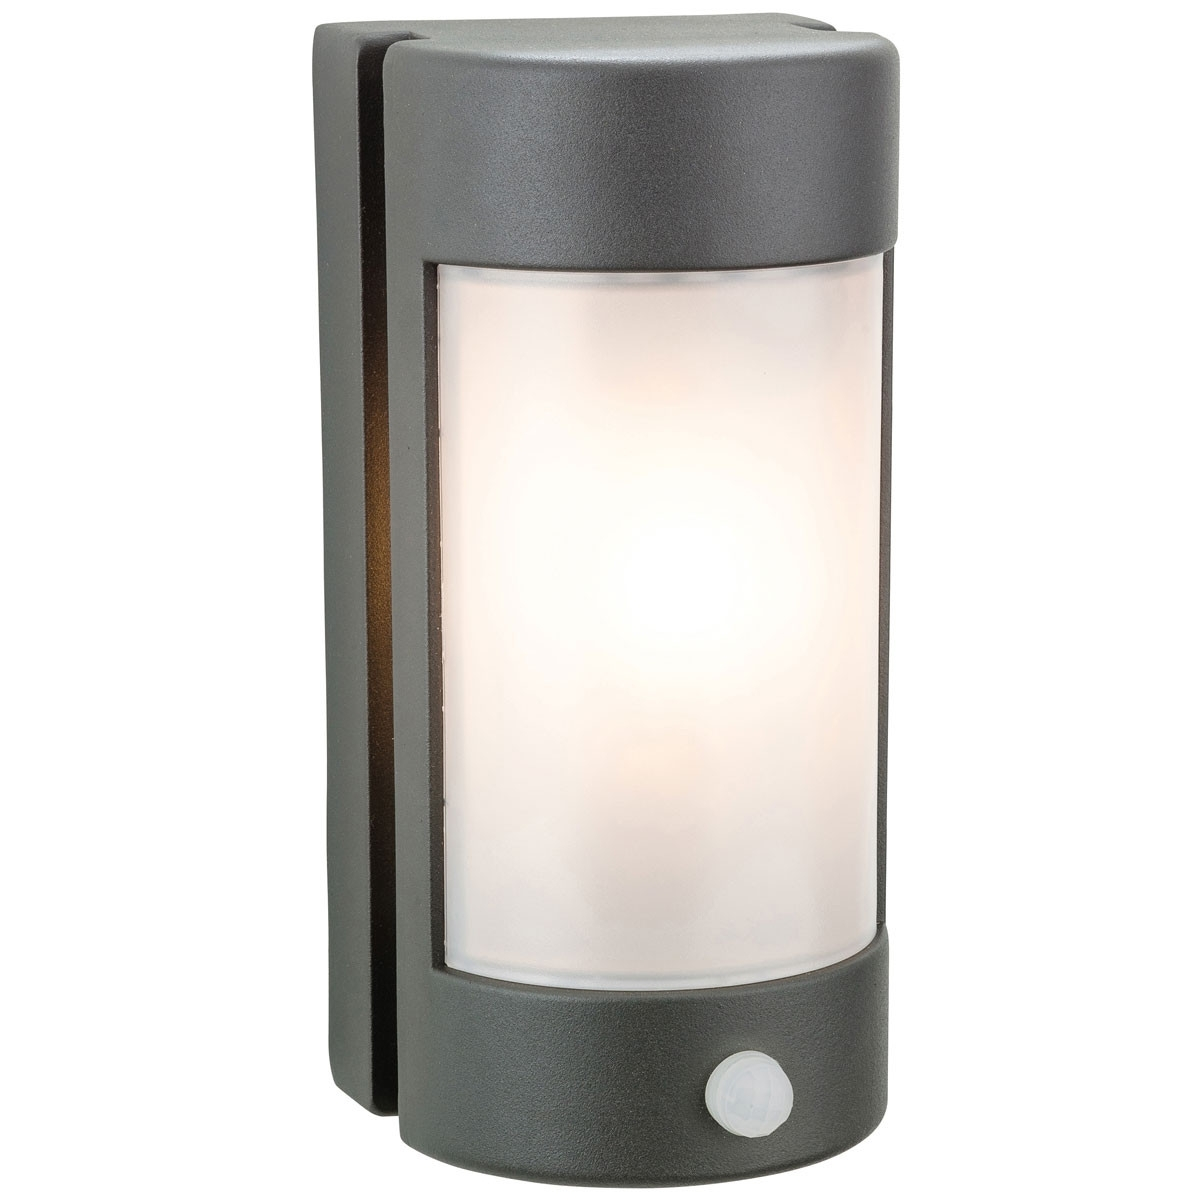 Diecast Aluminium Graphite Outdoor Wall Light With Pir Throughout Outdoor Led Wall Lights With Pir (View 2 of 15)